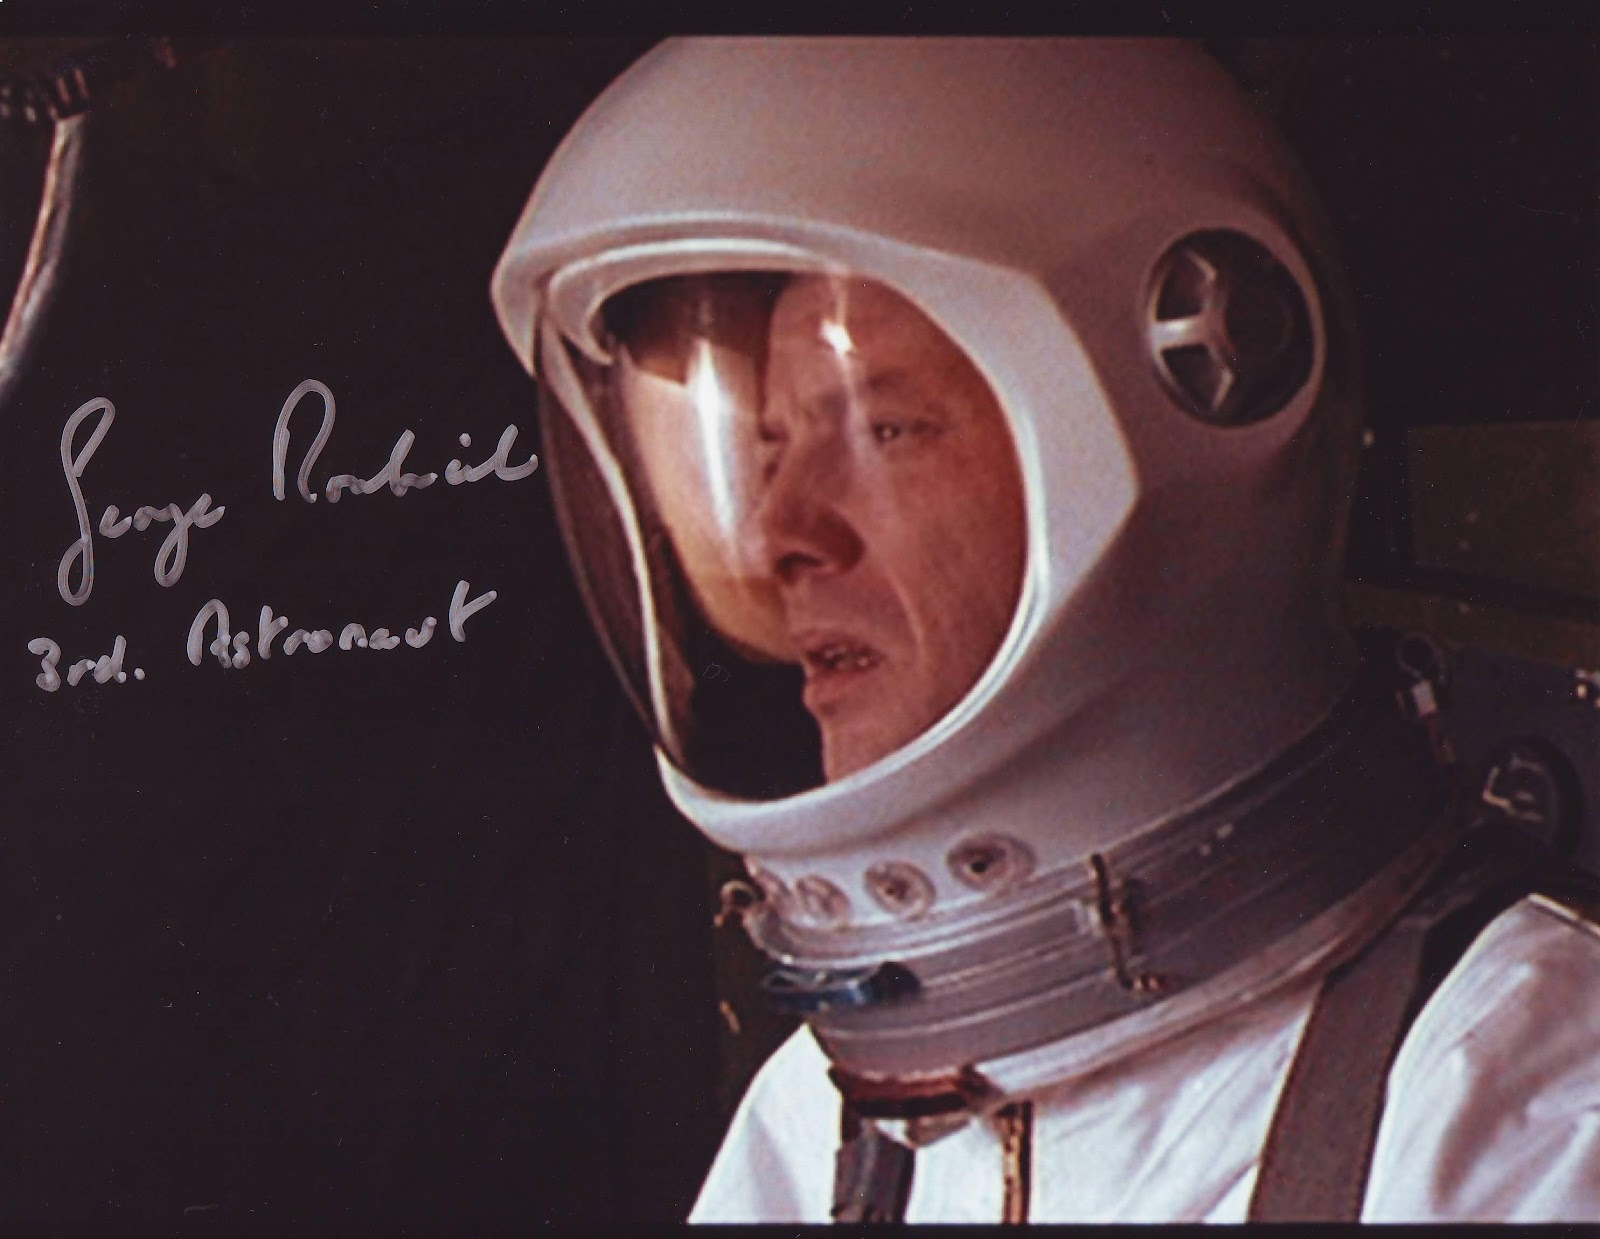 Space relics 5 octobre 1962 james bond 50 ans d for Portent relic